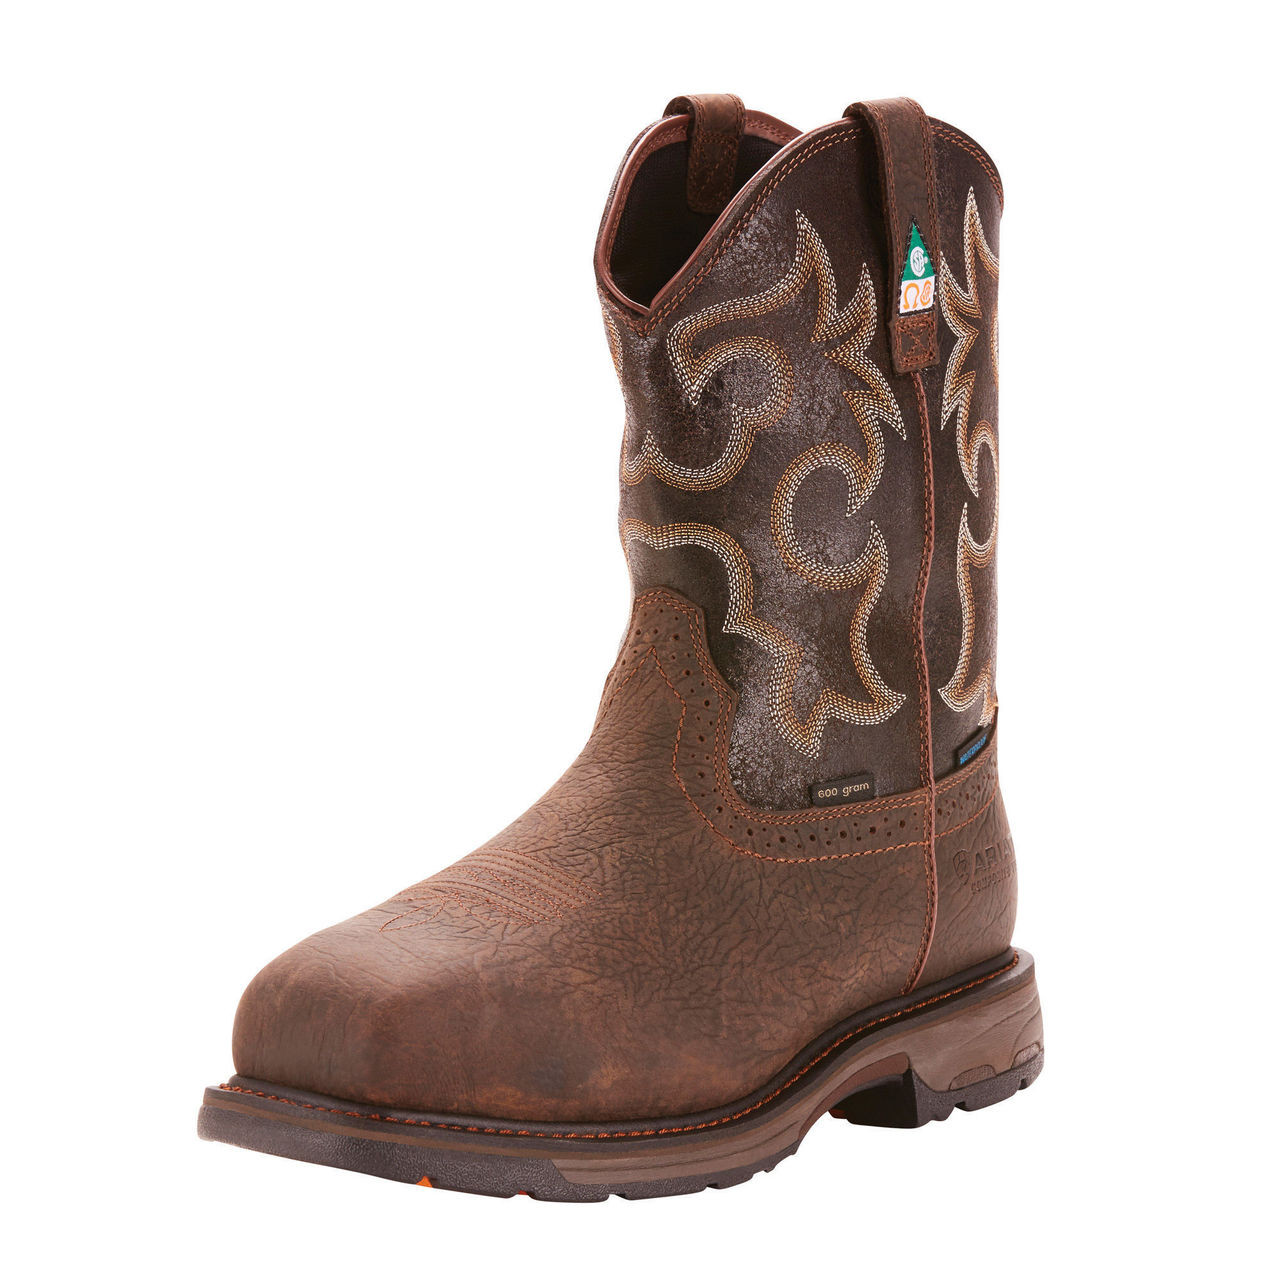 2c6b6c623a2 Men's Ariat Workhog H2O Insulated CSA Composite Toe Western Work Boot